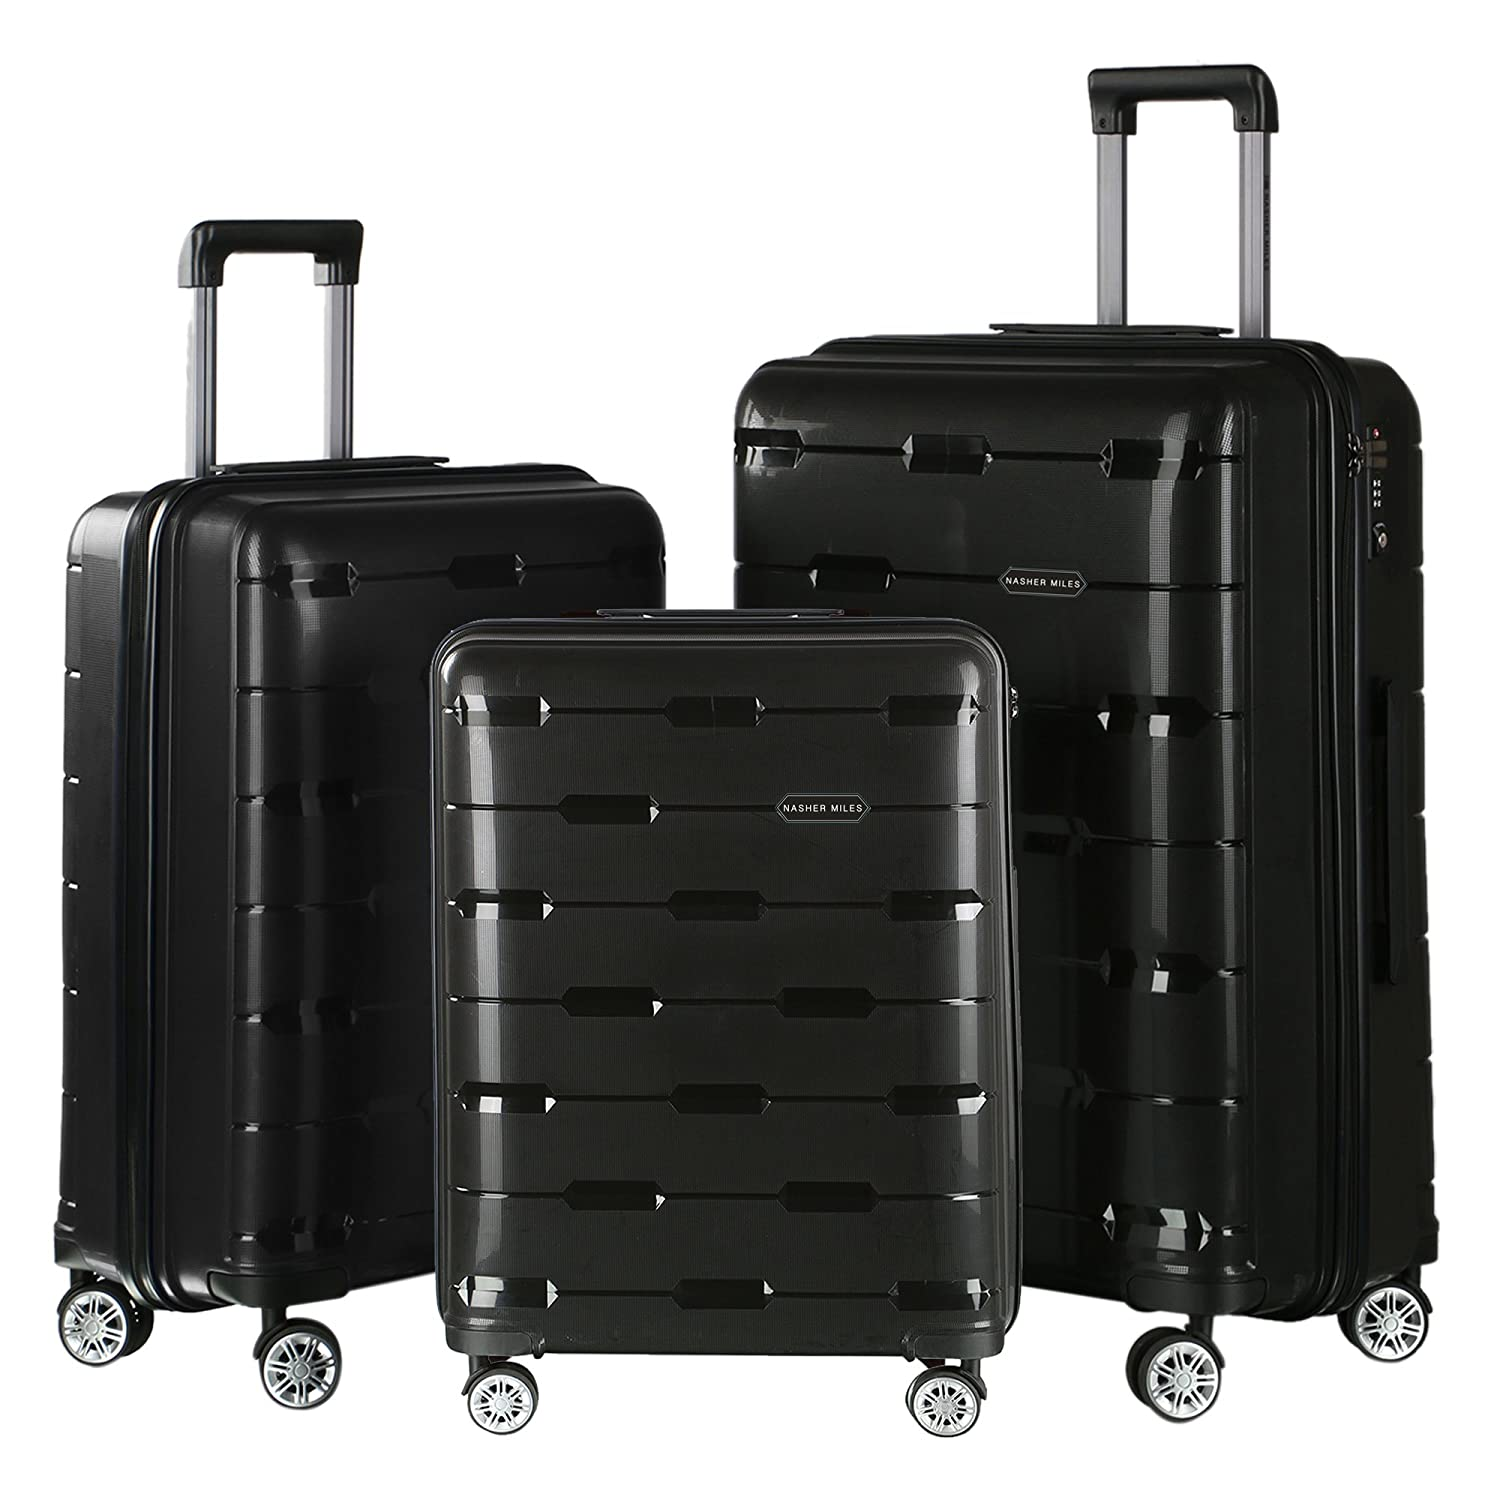 Minimum 55% off Nasher Miles Luggage Trolley